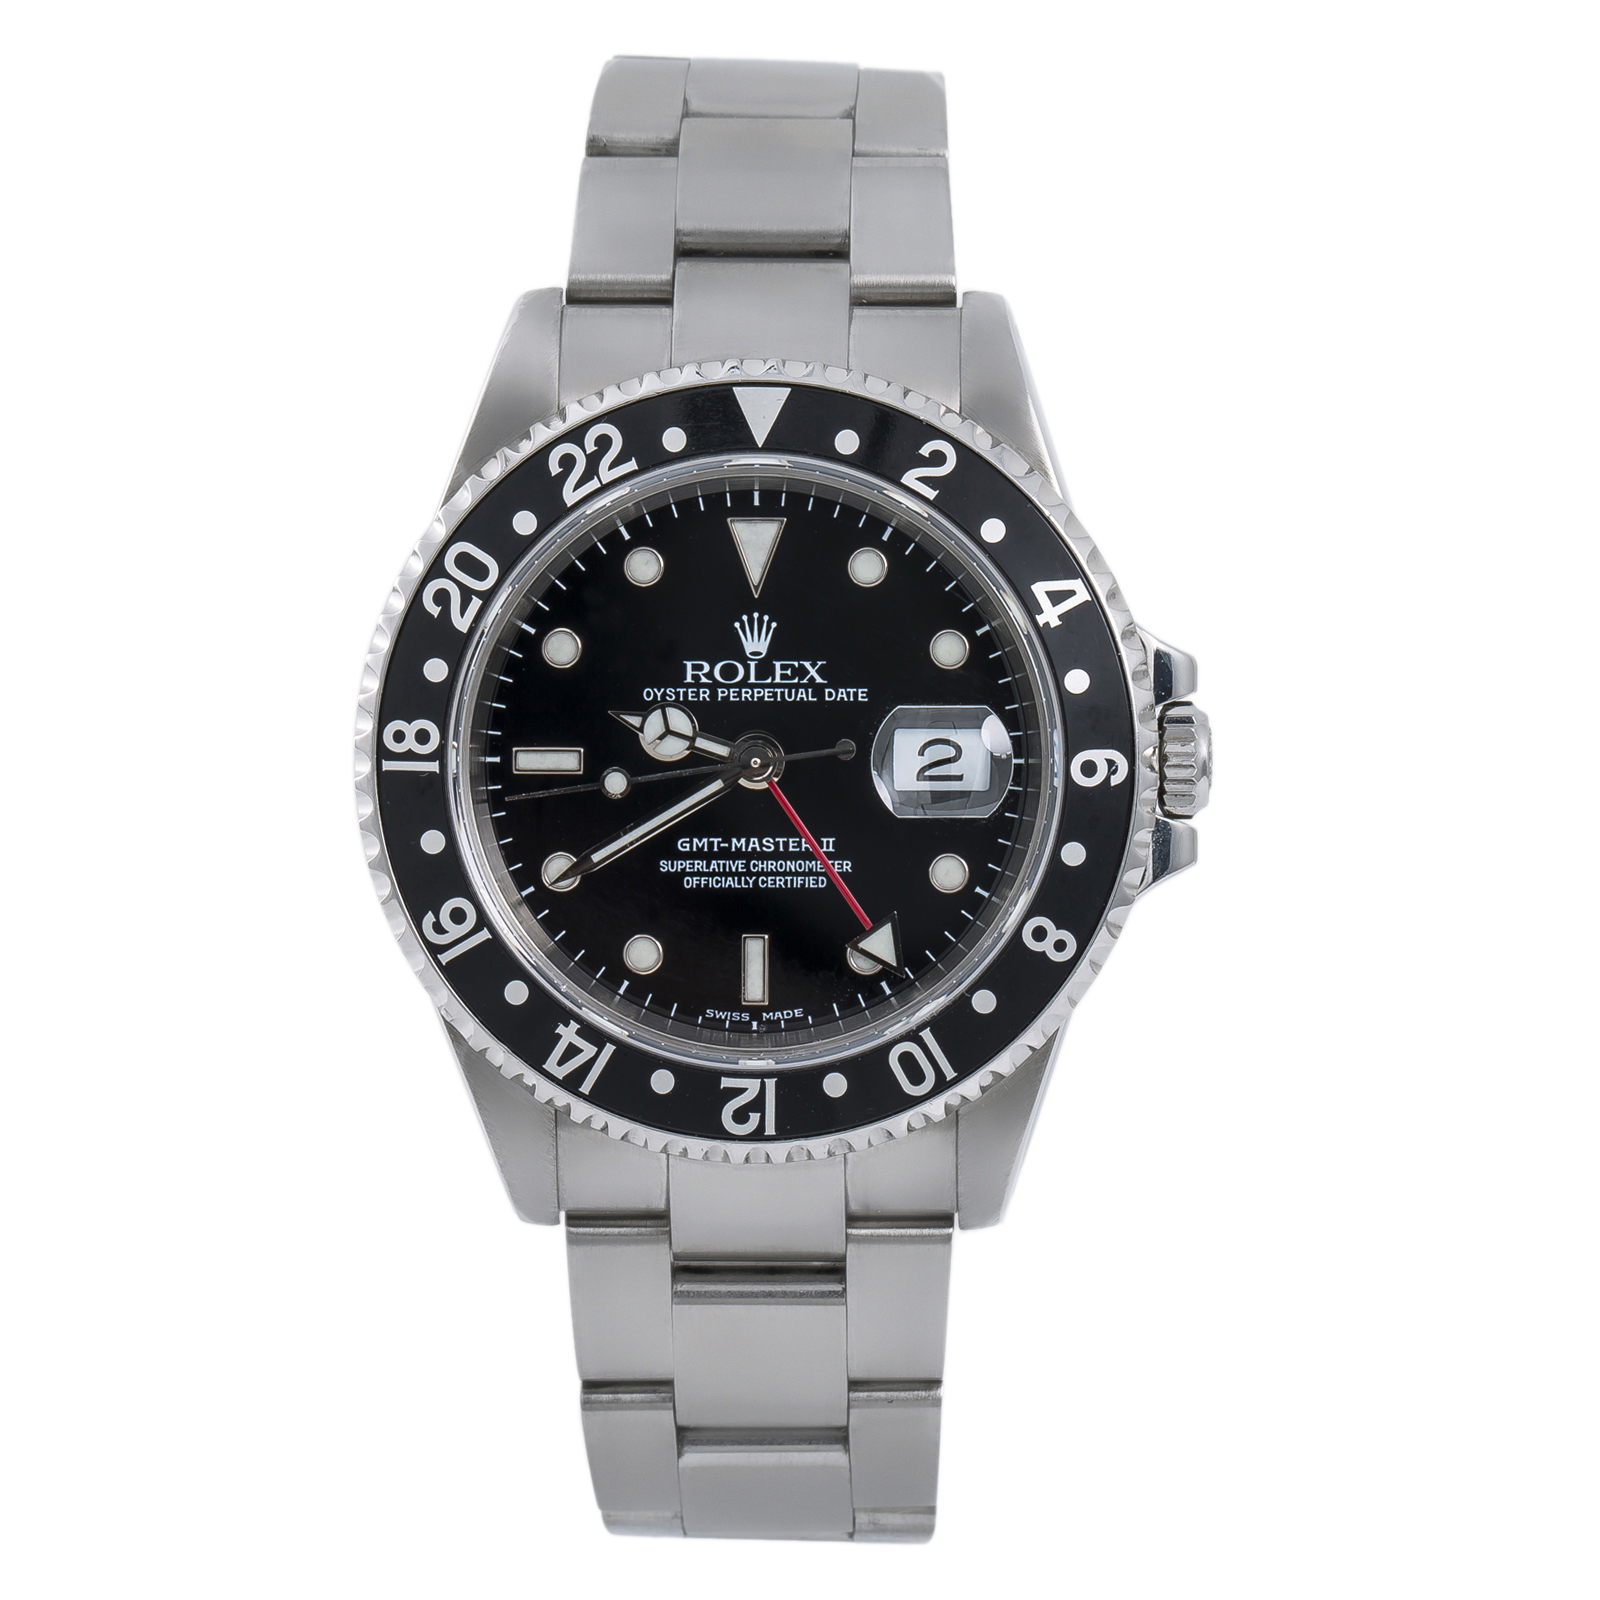 Details About Rolex Gmt Master Ii 16710 Black Mens Automatic Watch Stainless Steel 40mm